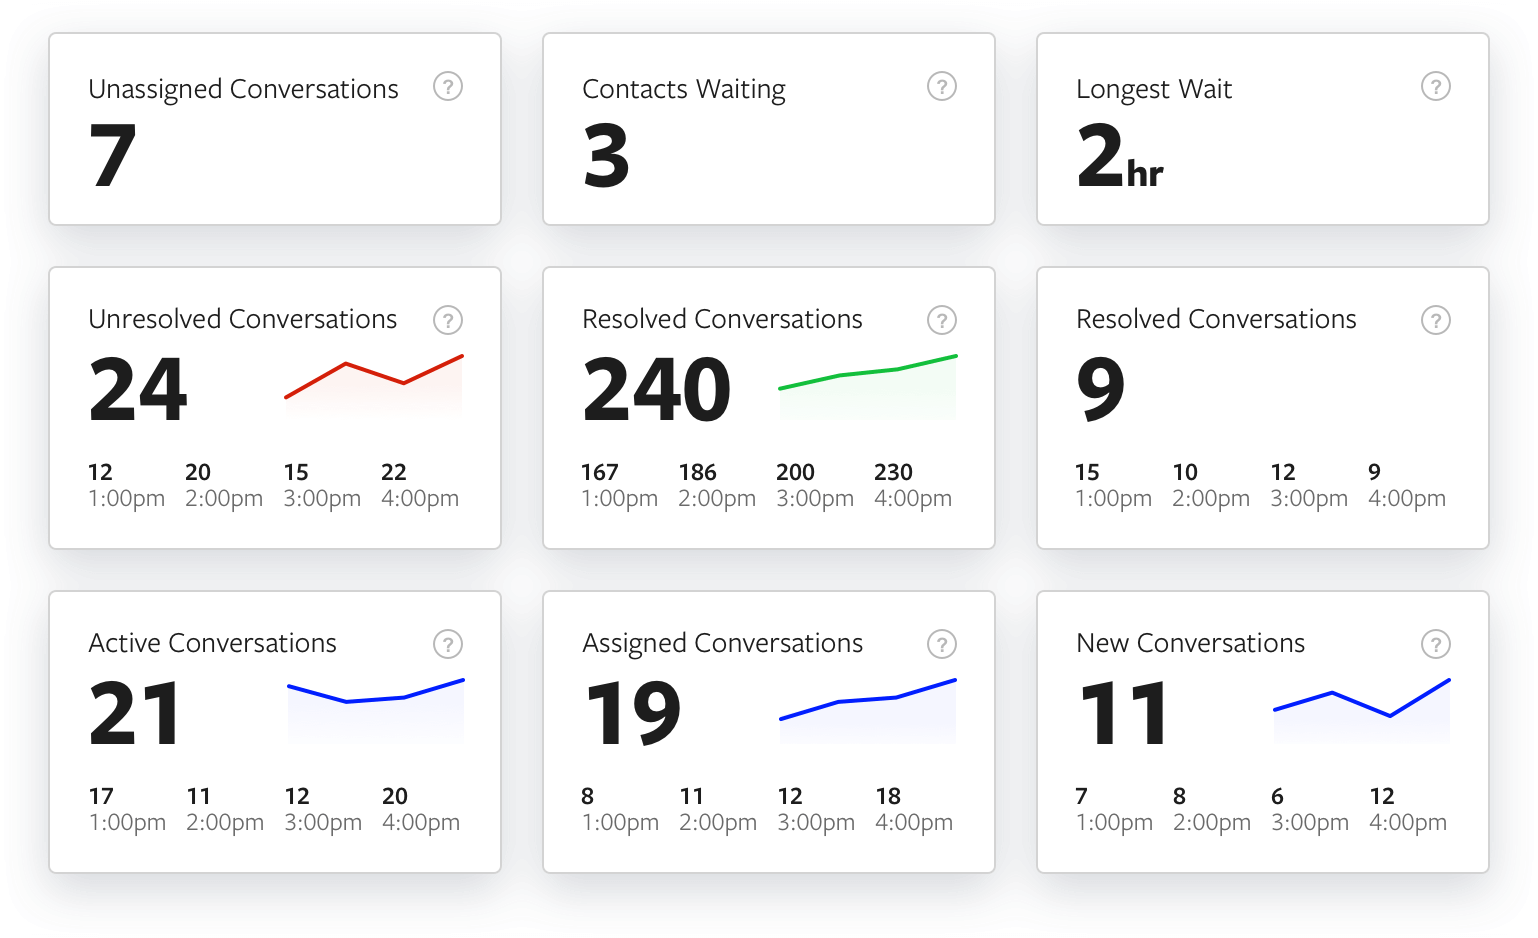 Grid of boxes containing help desk metrics for conversations and agents